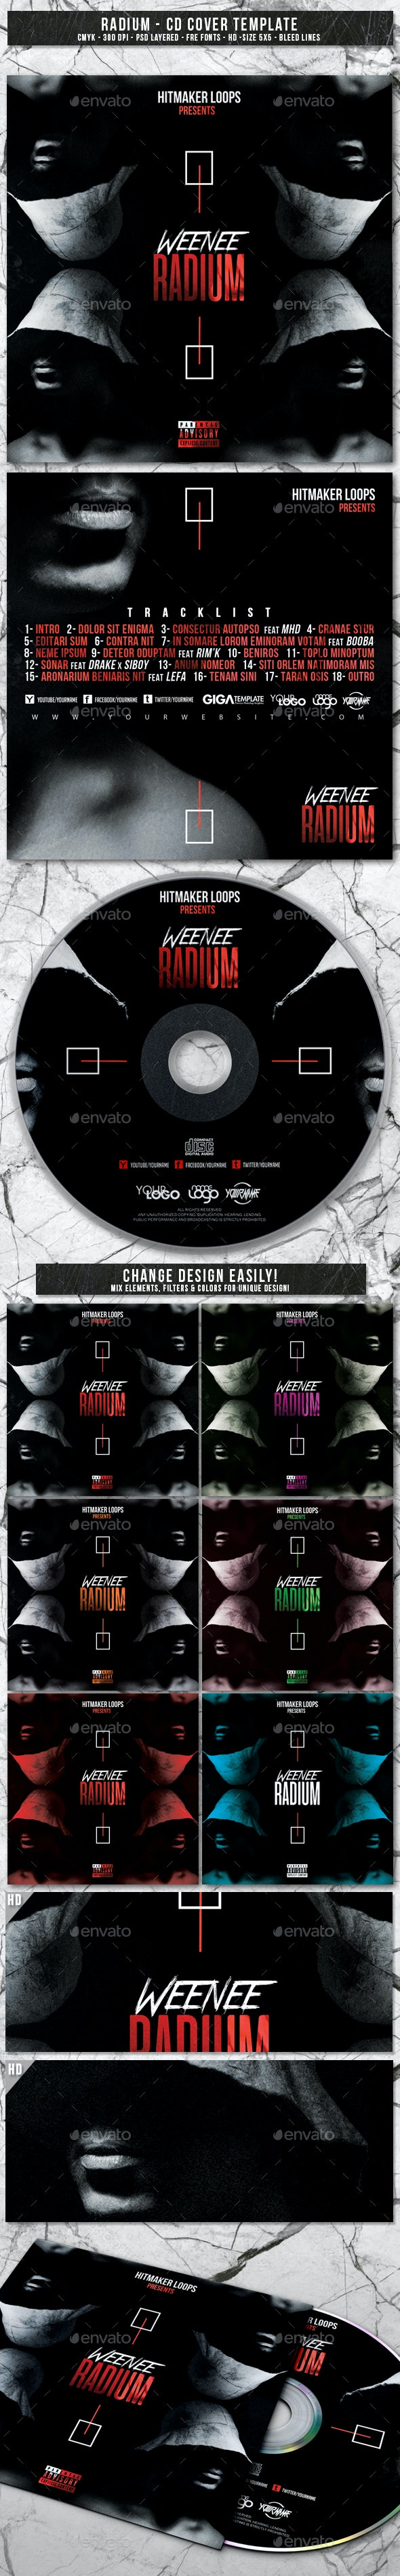 Radium | Album CD Mixtape Cover Template - CD & DVD Artwork Print Templates